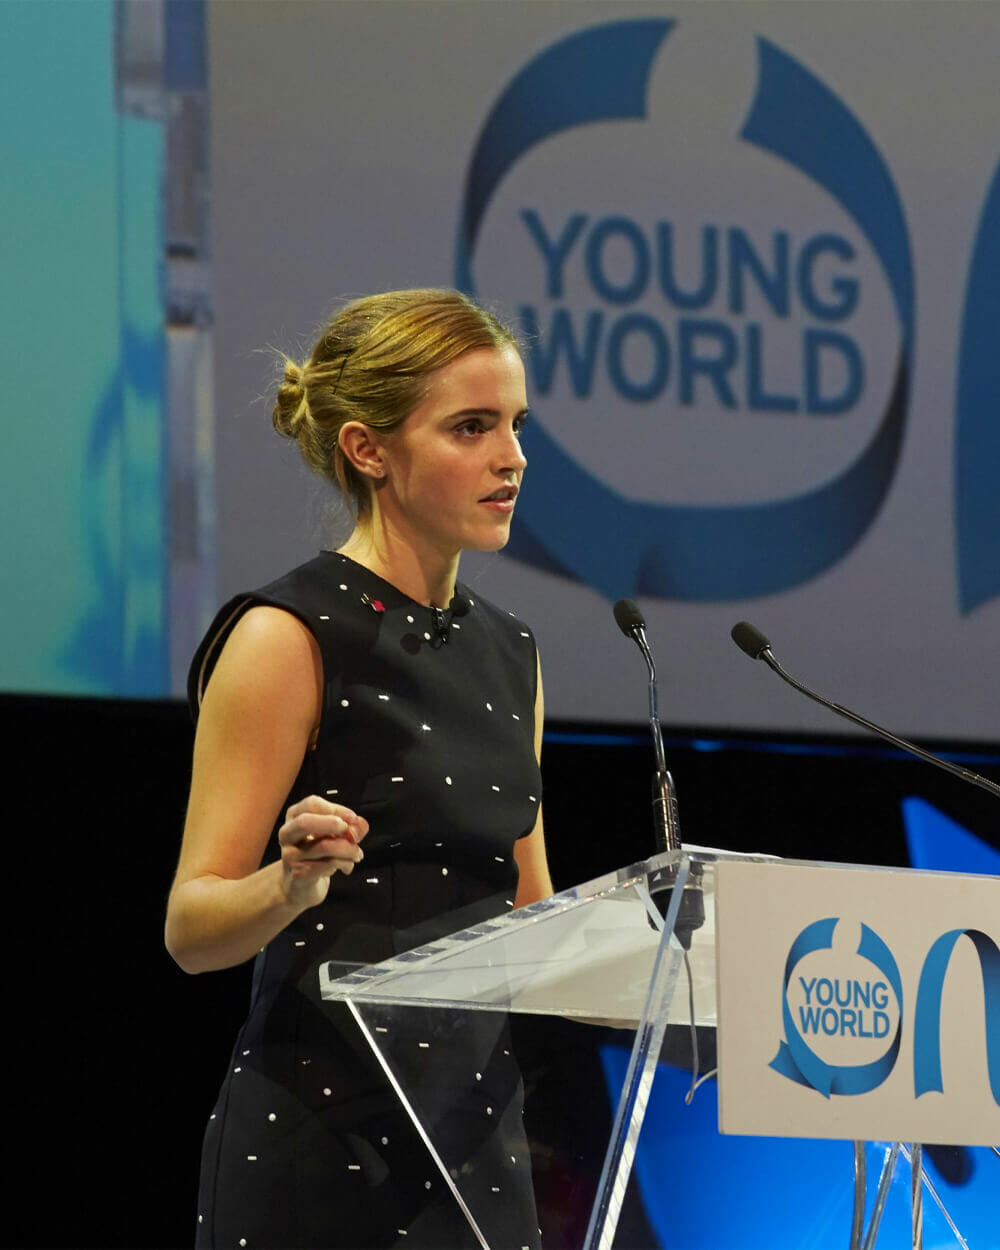 Emma Watson activism at Young World